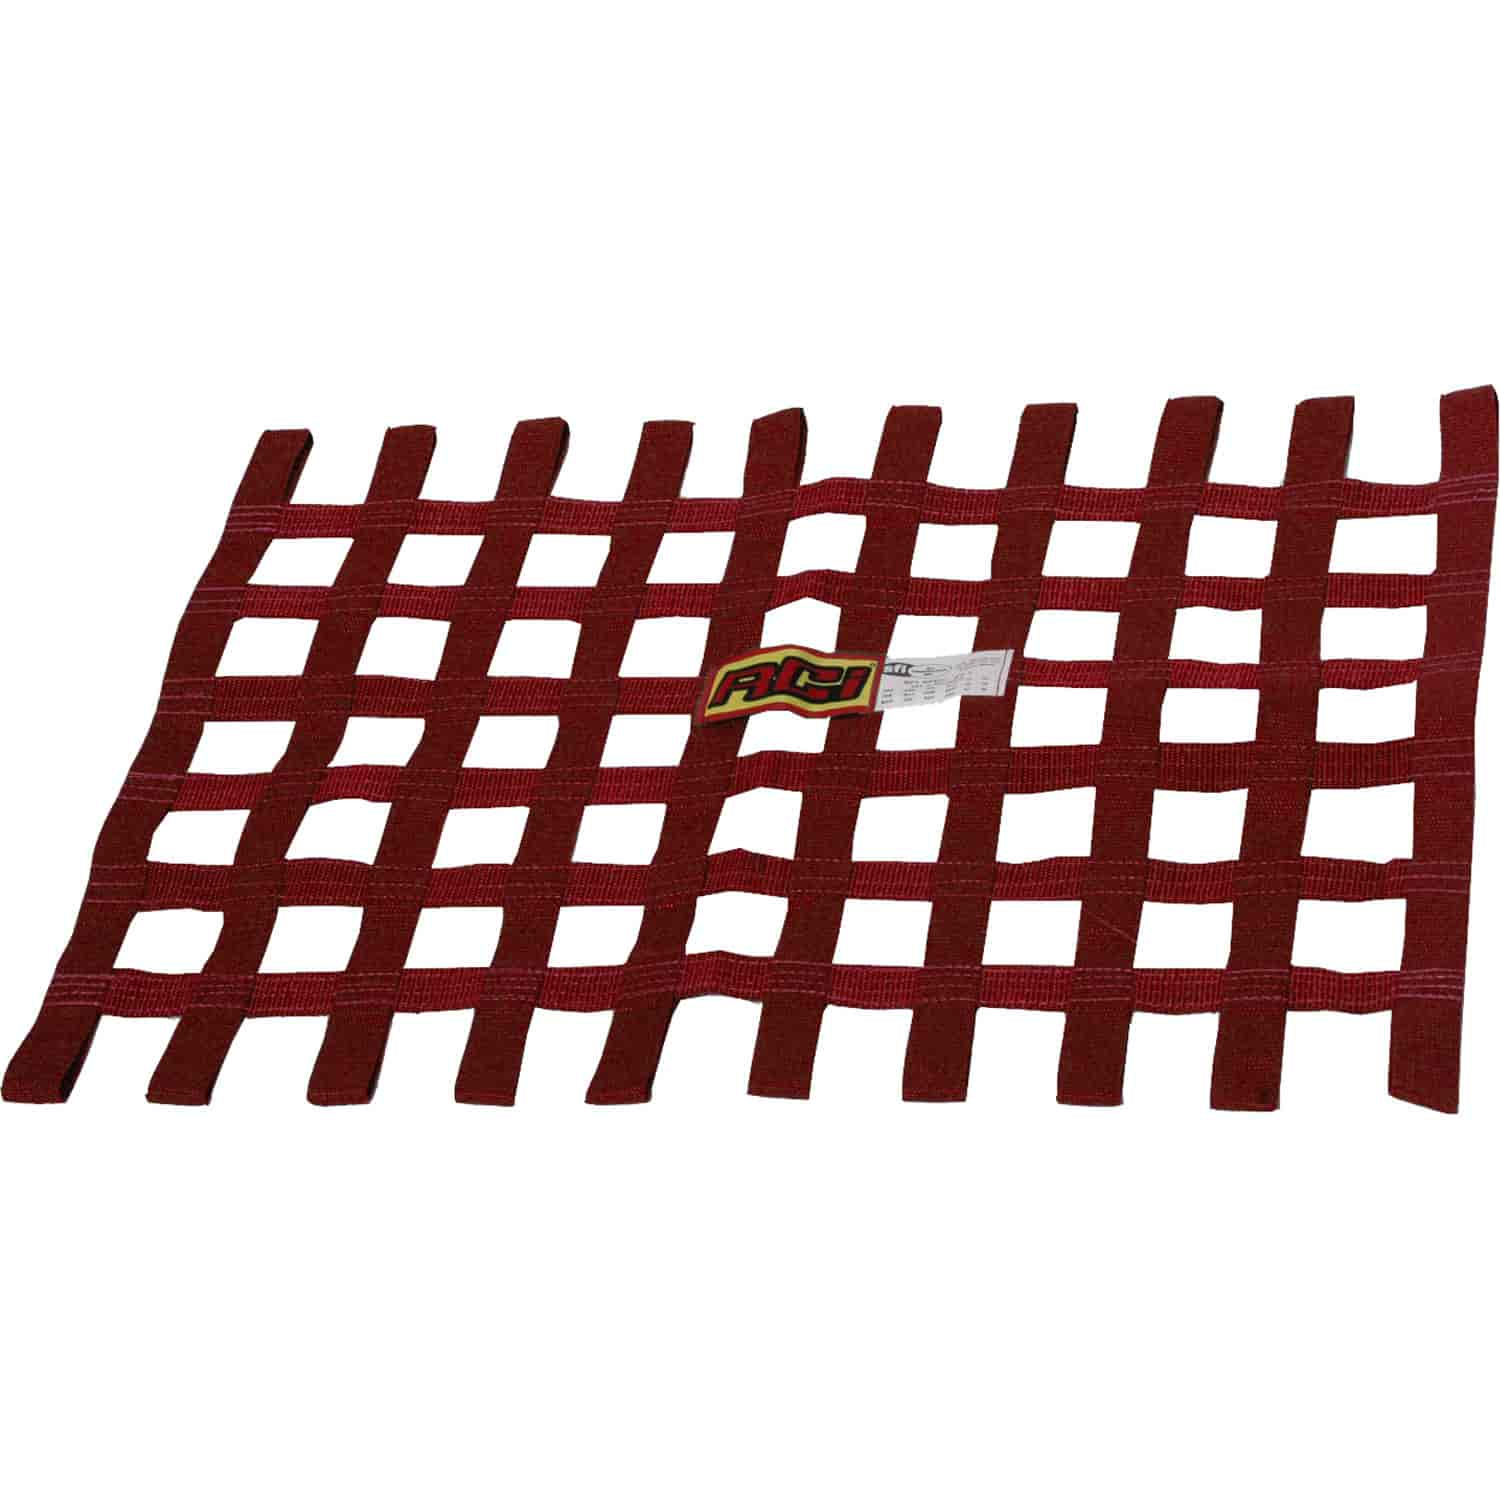 RCI 7601B - RCI Safety Window Net